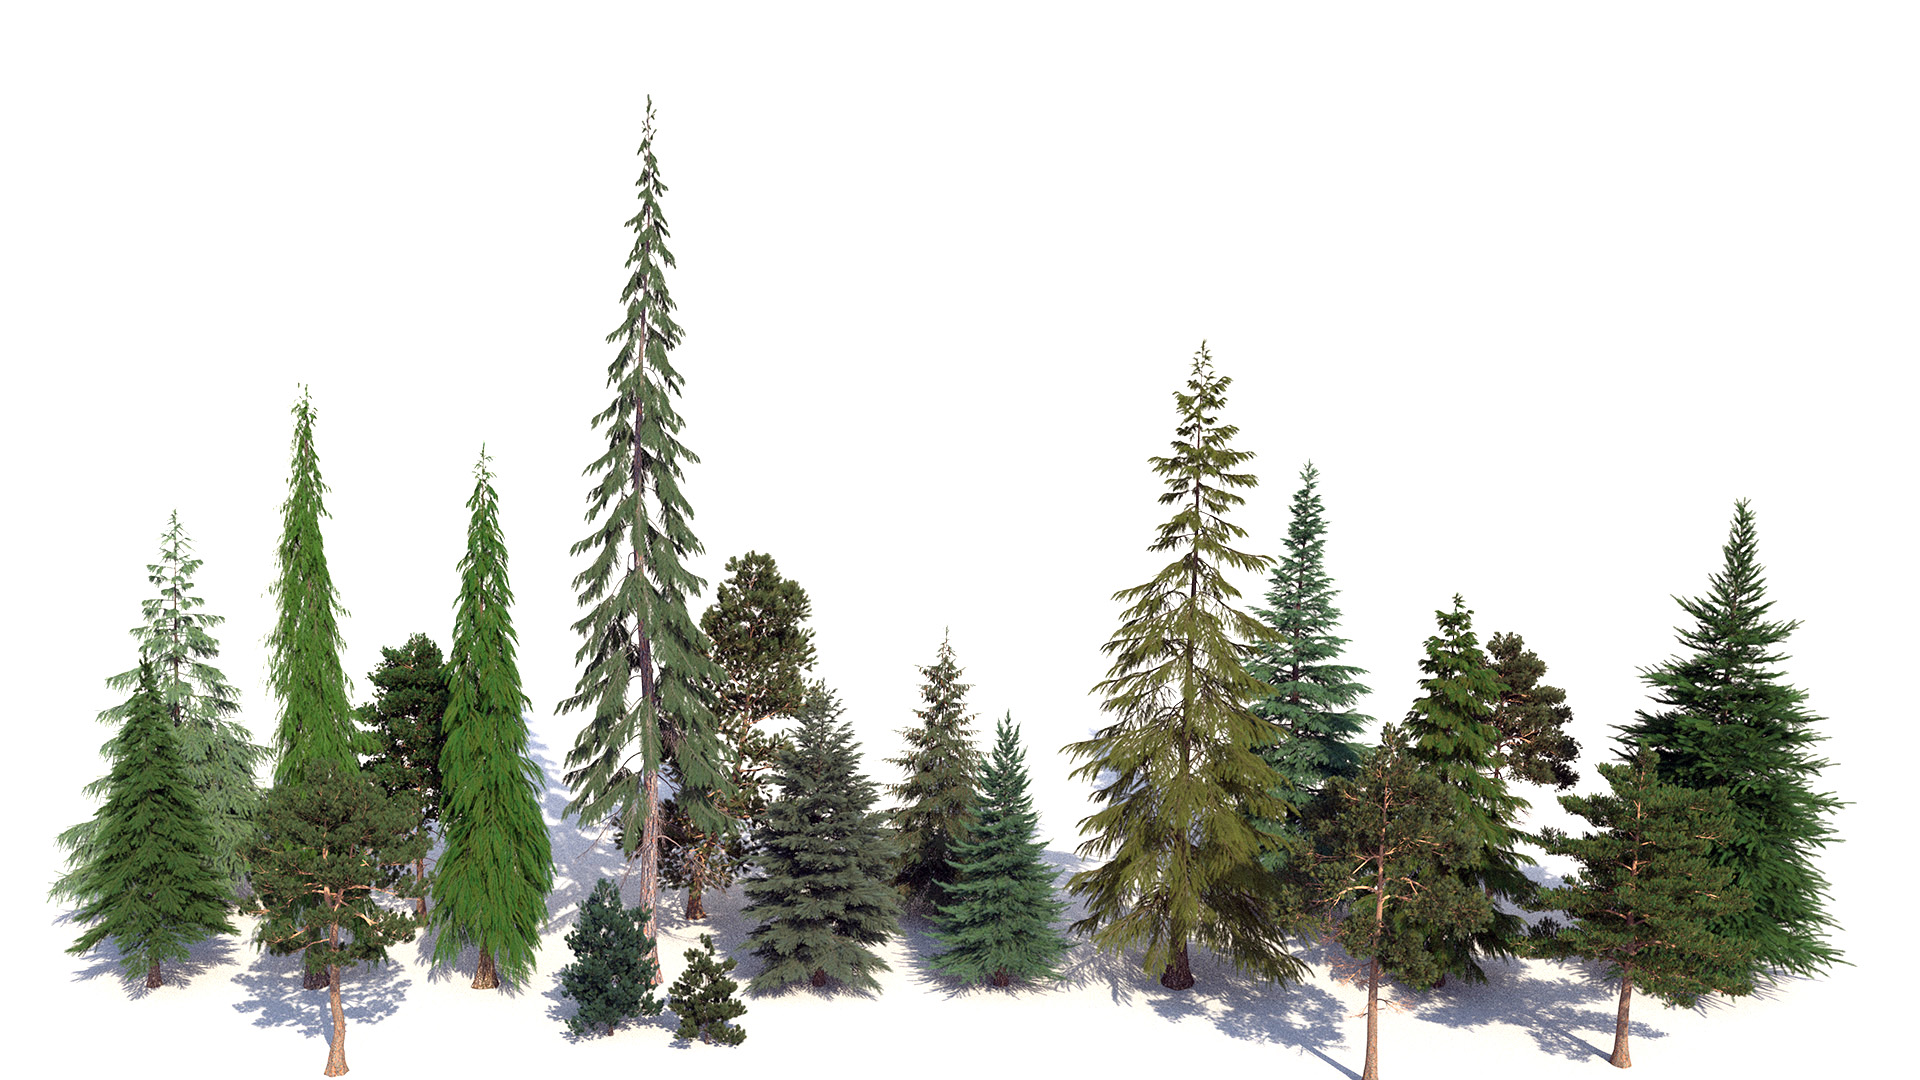 Figure 16: Test render of a lineup of the trees used in the final forest.